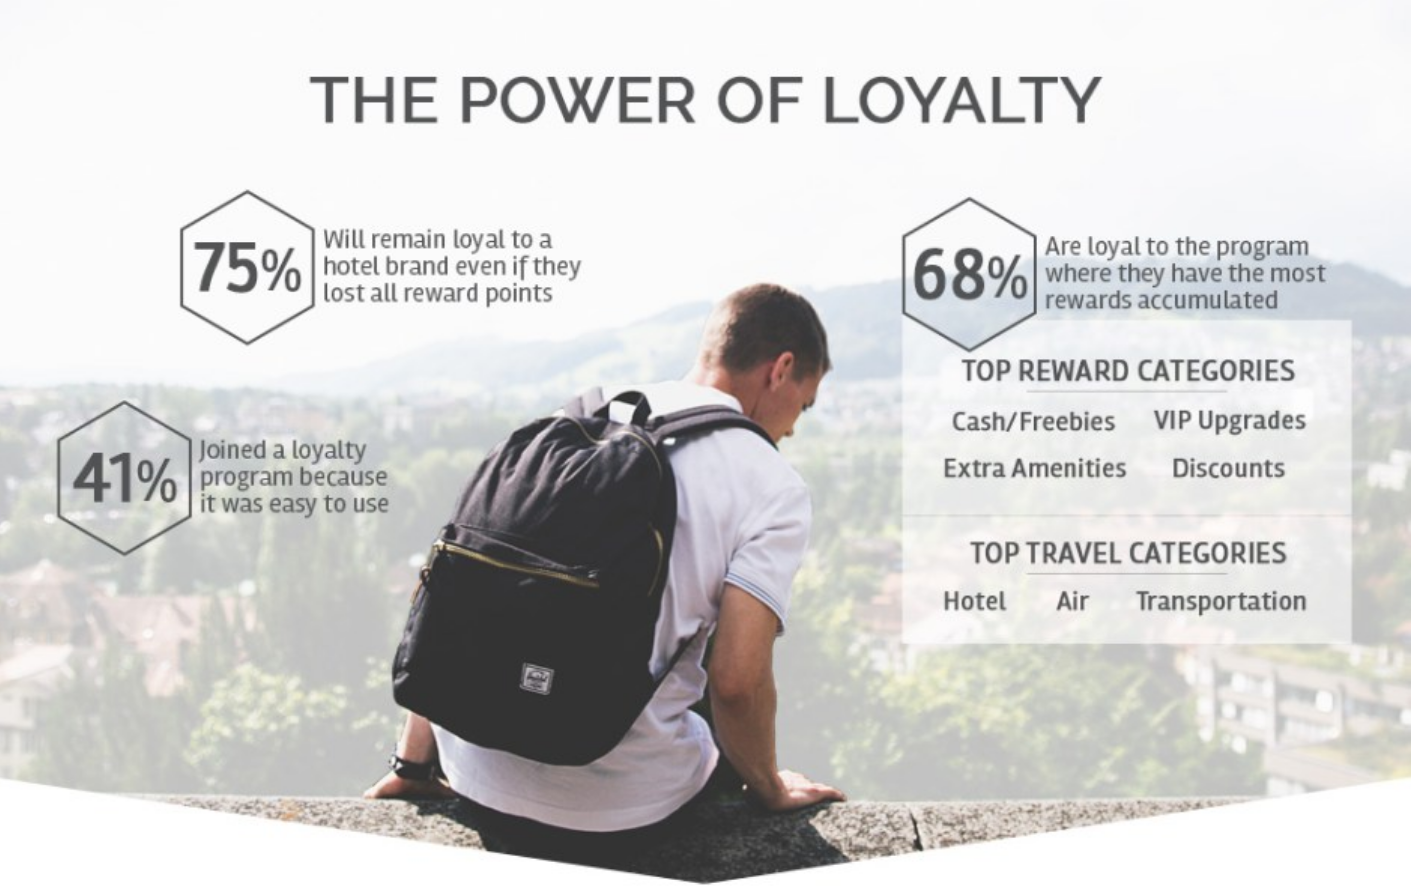 Millenials: the power of loyalty